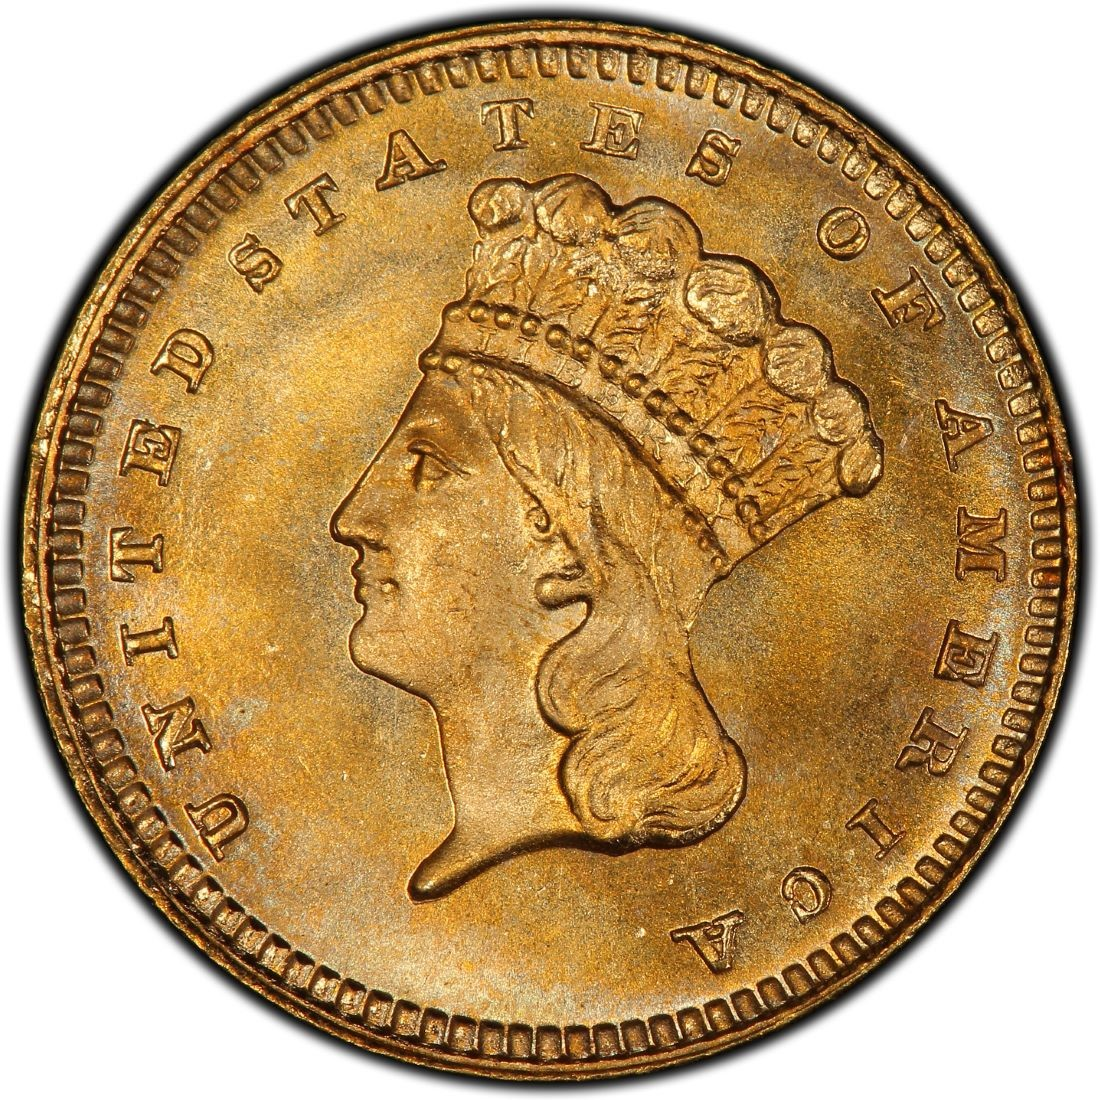 1880 Large Head Indian Princess Gold Dollar Values And